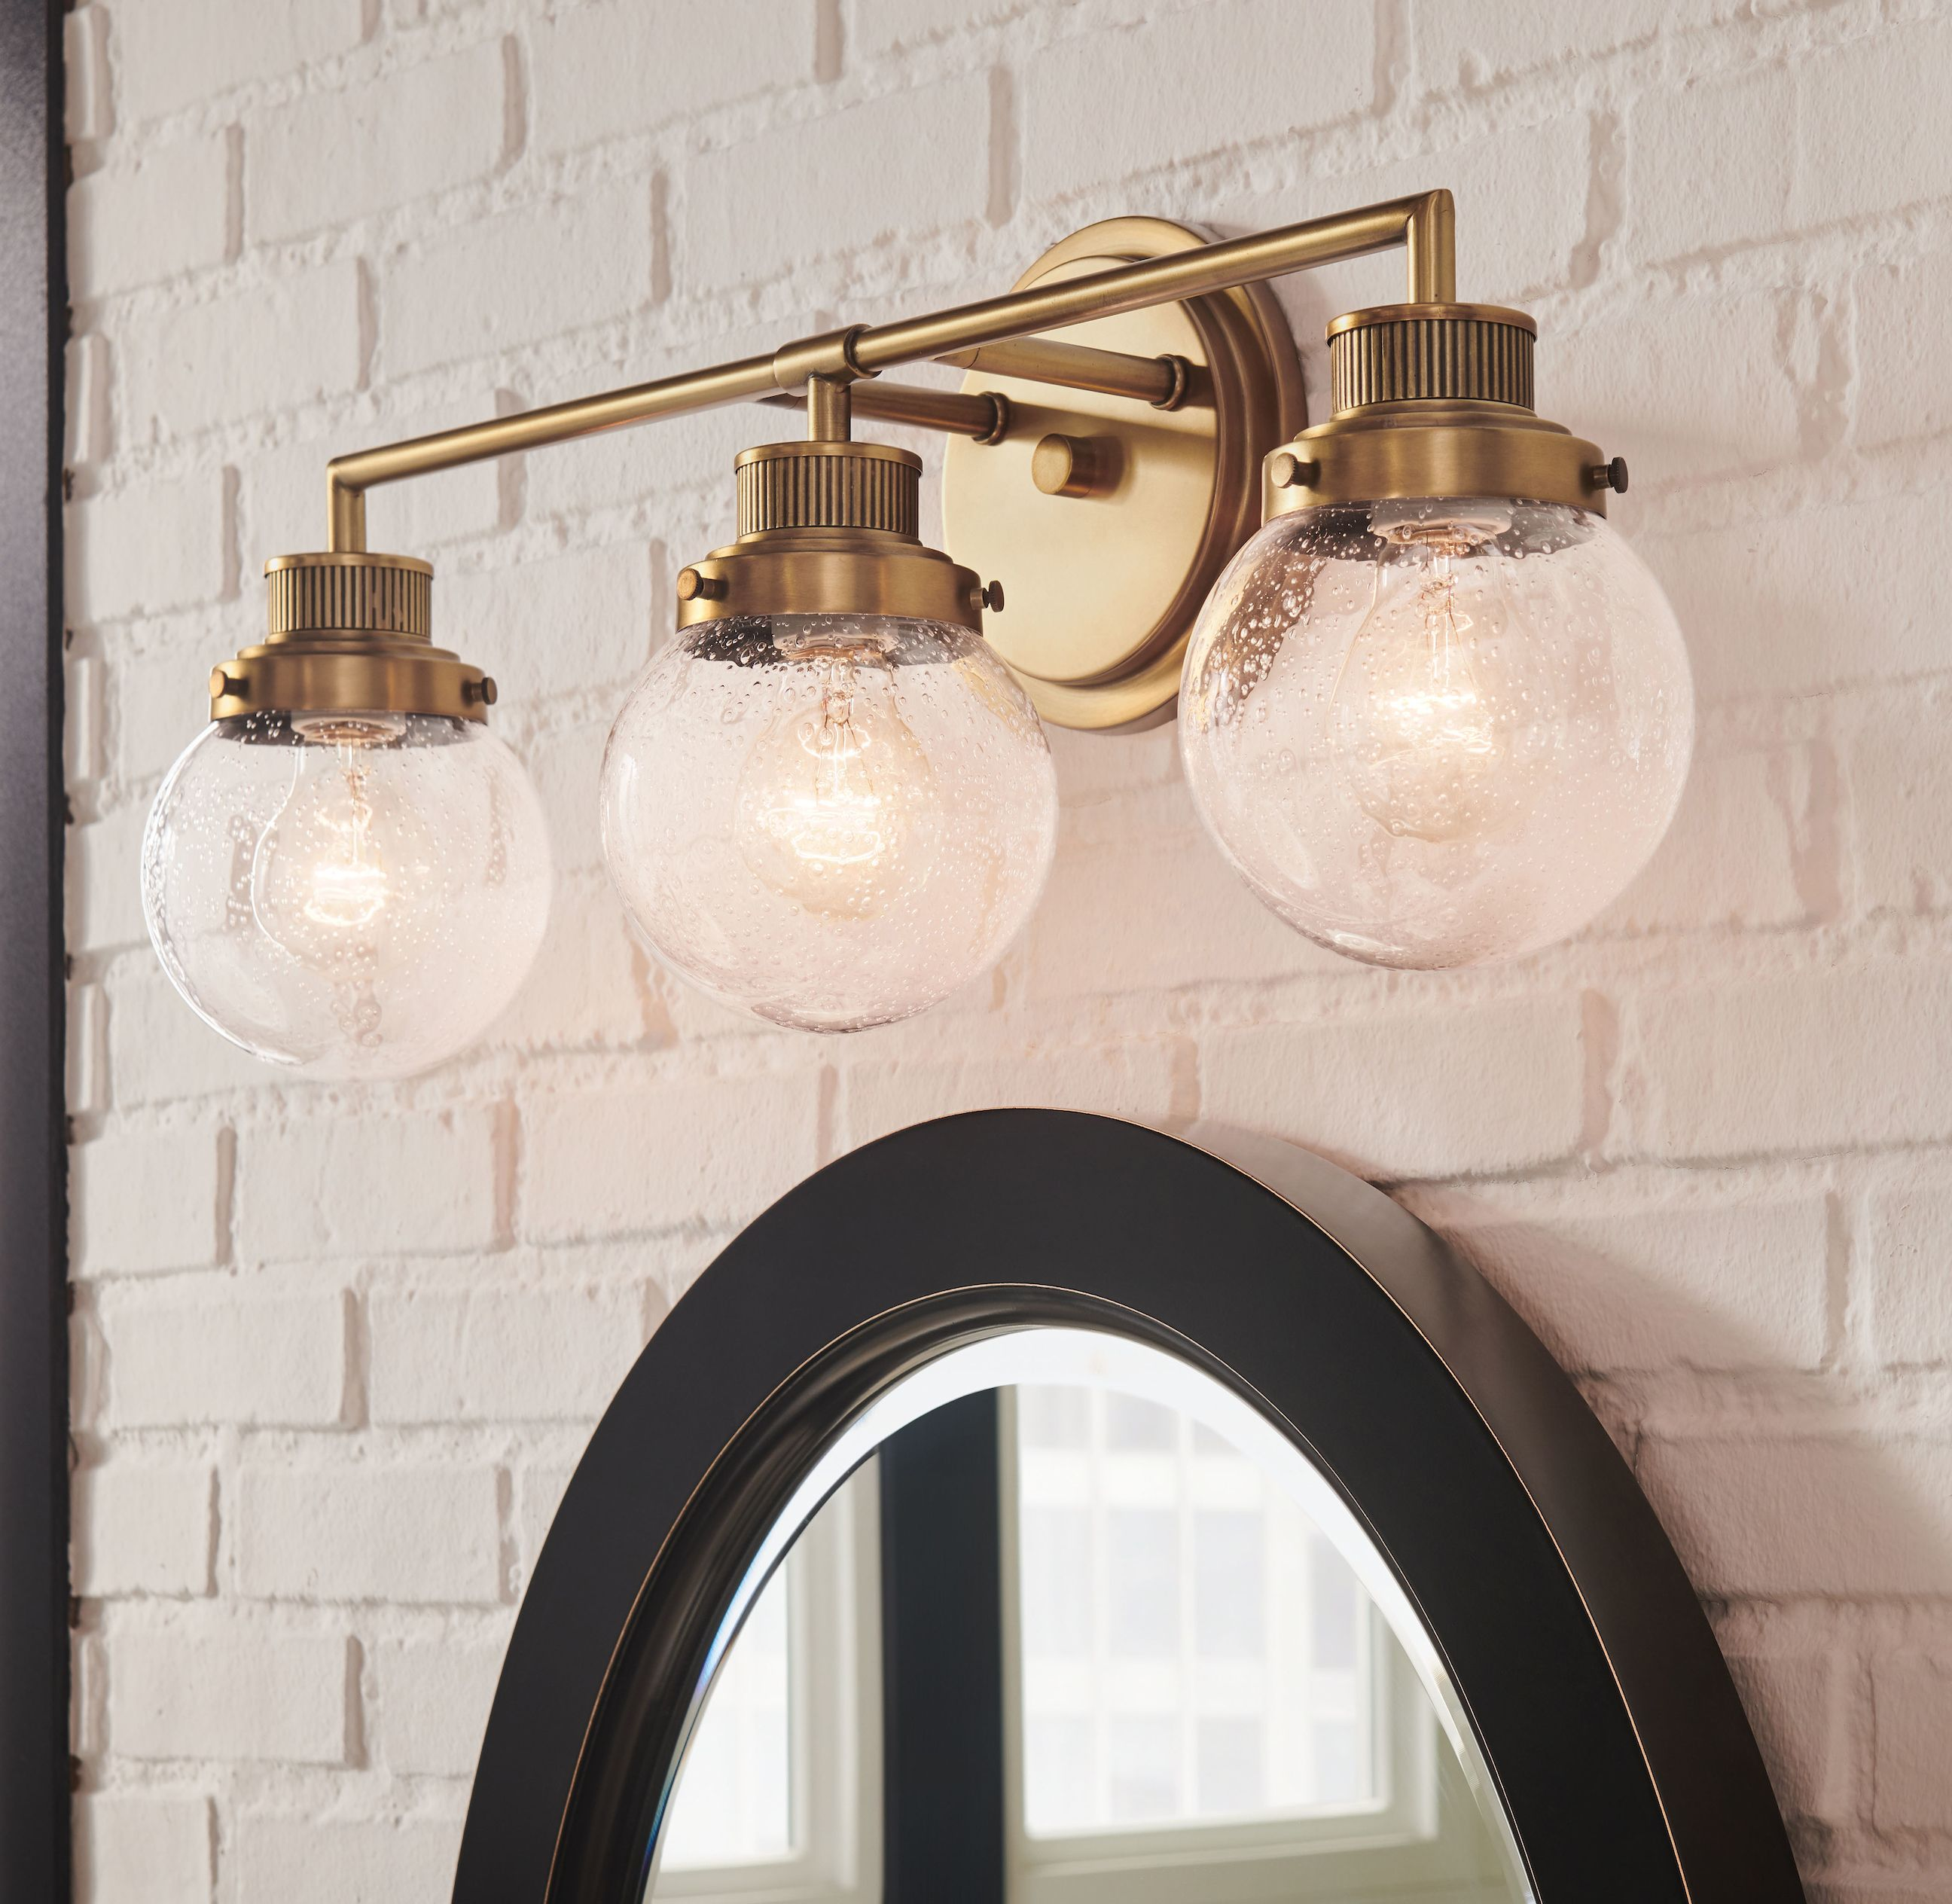 Vintage Style Bath Light By Hinkley In 2020 Bathroom Lighting Bathroom Lighting Design Cabin Lighting